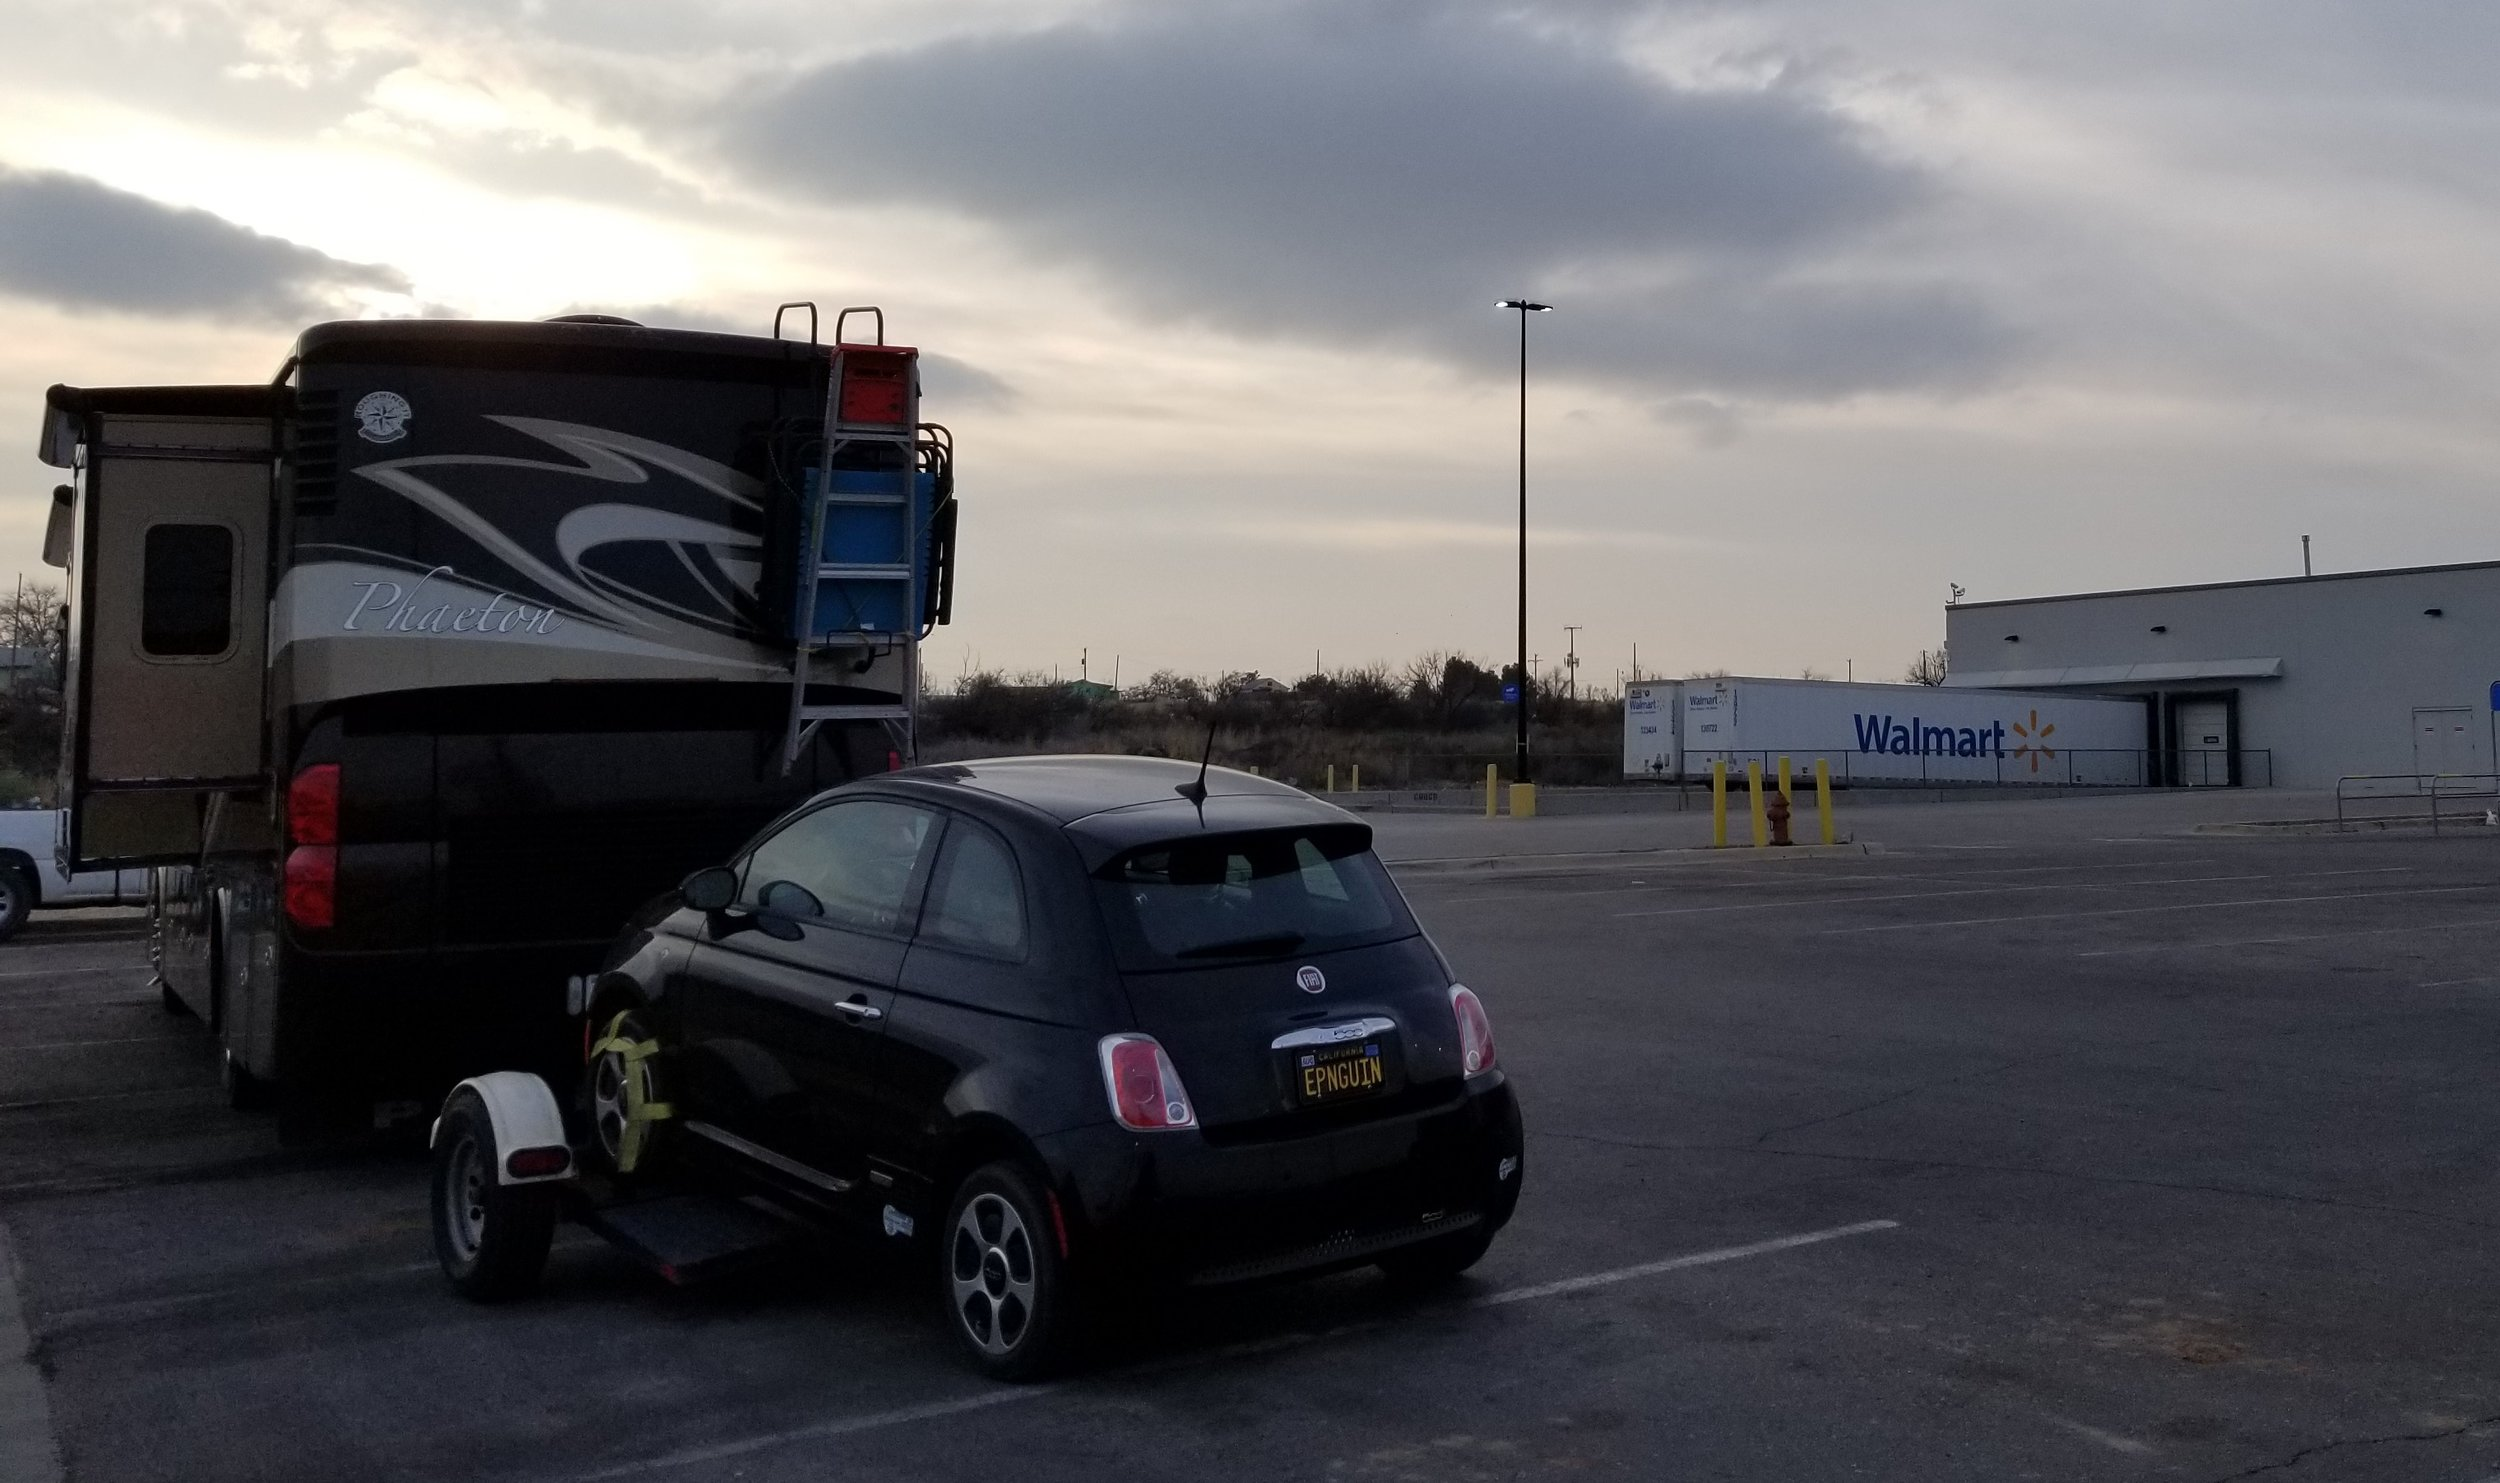 All of the RV parks we called were full so we spent two nights in the Walmart parking lot. We used the money we would have spent at the RV park to buy supplies at Walmart.